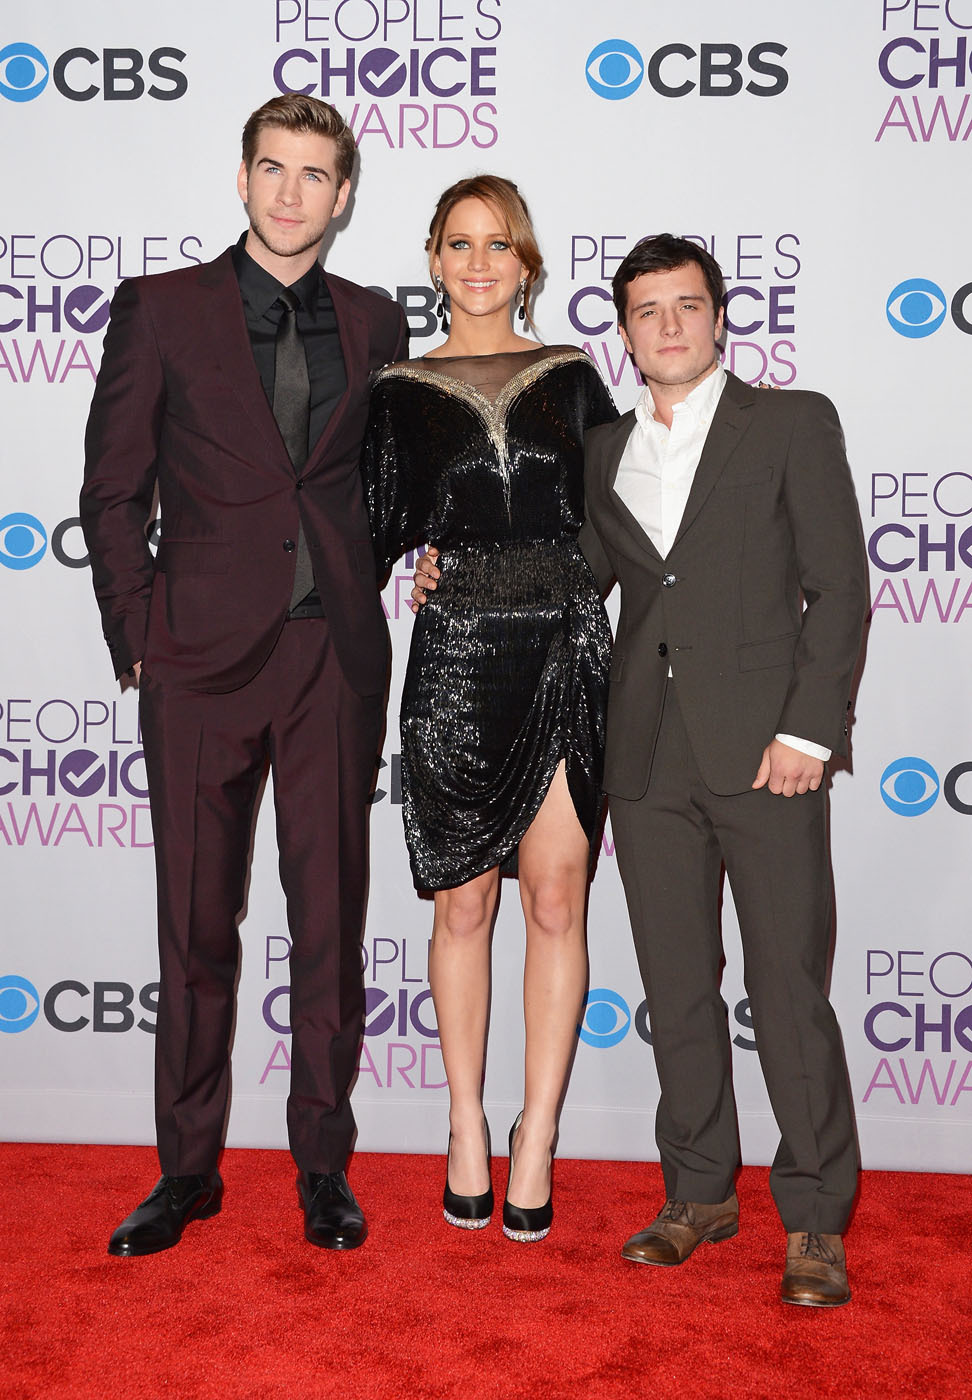 verysherry:  Liam Hemsworth, Jennifer Lawrence and Josh Hutcherson || 39th Annual People's Choice Awards in LA on January 9, 2013  EEEE! Josh Hutcherson is so adorably teeny! Liam should carry him around in his pocket!